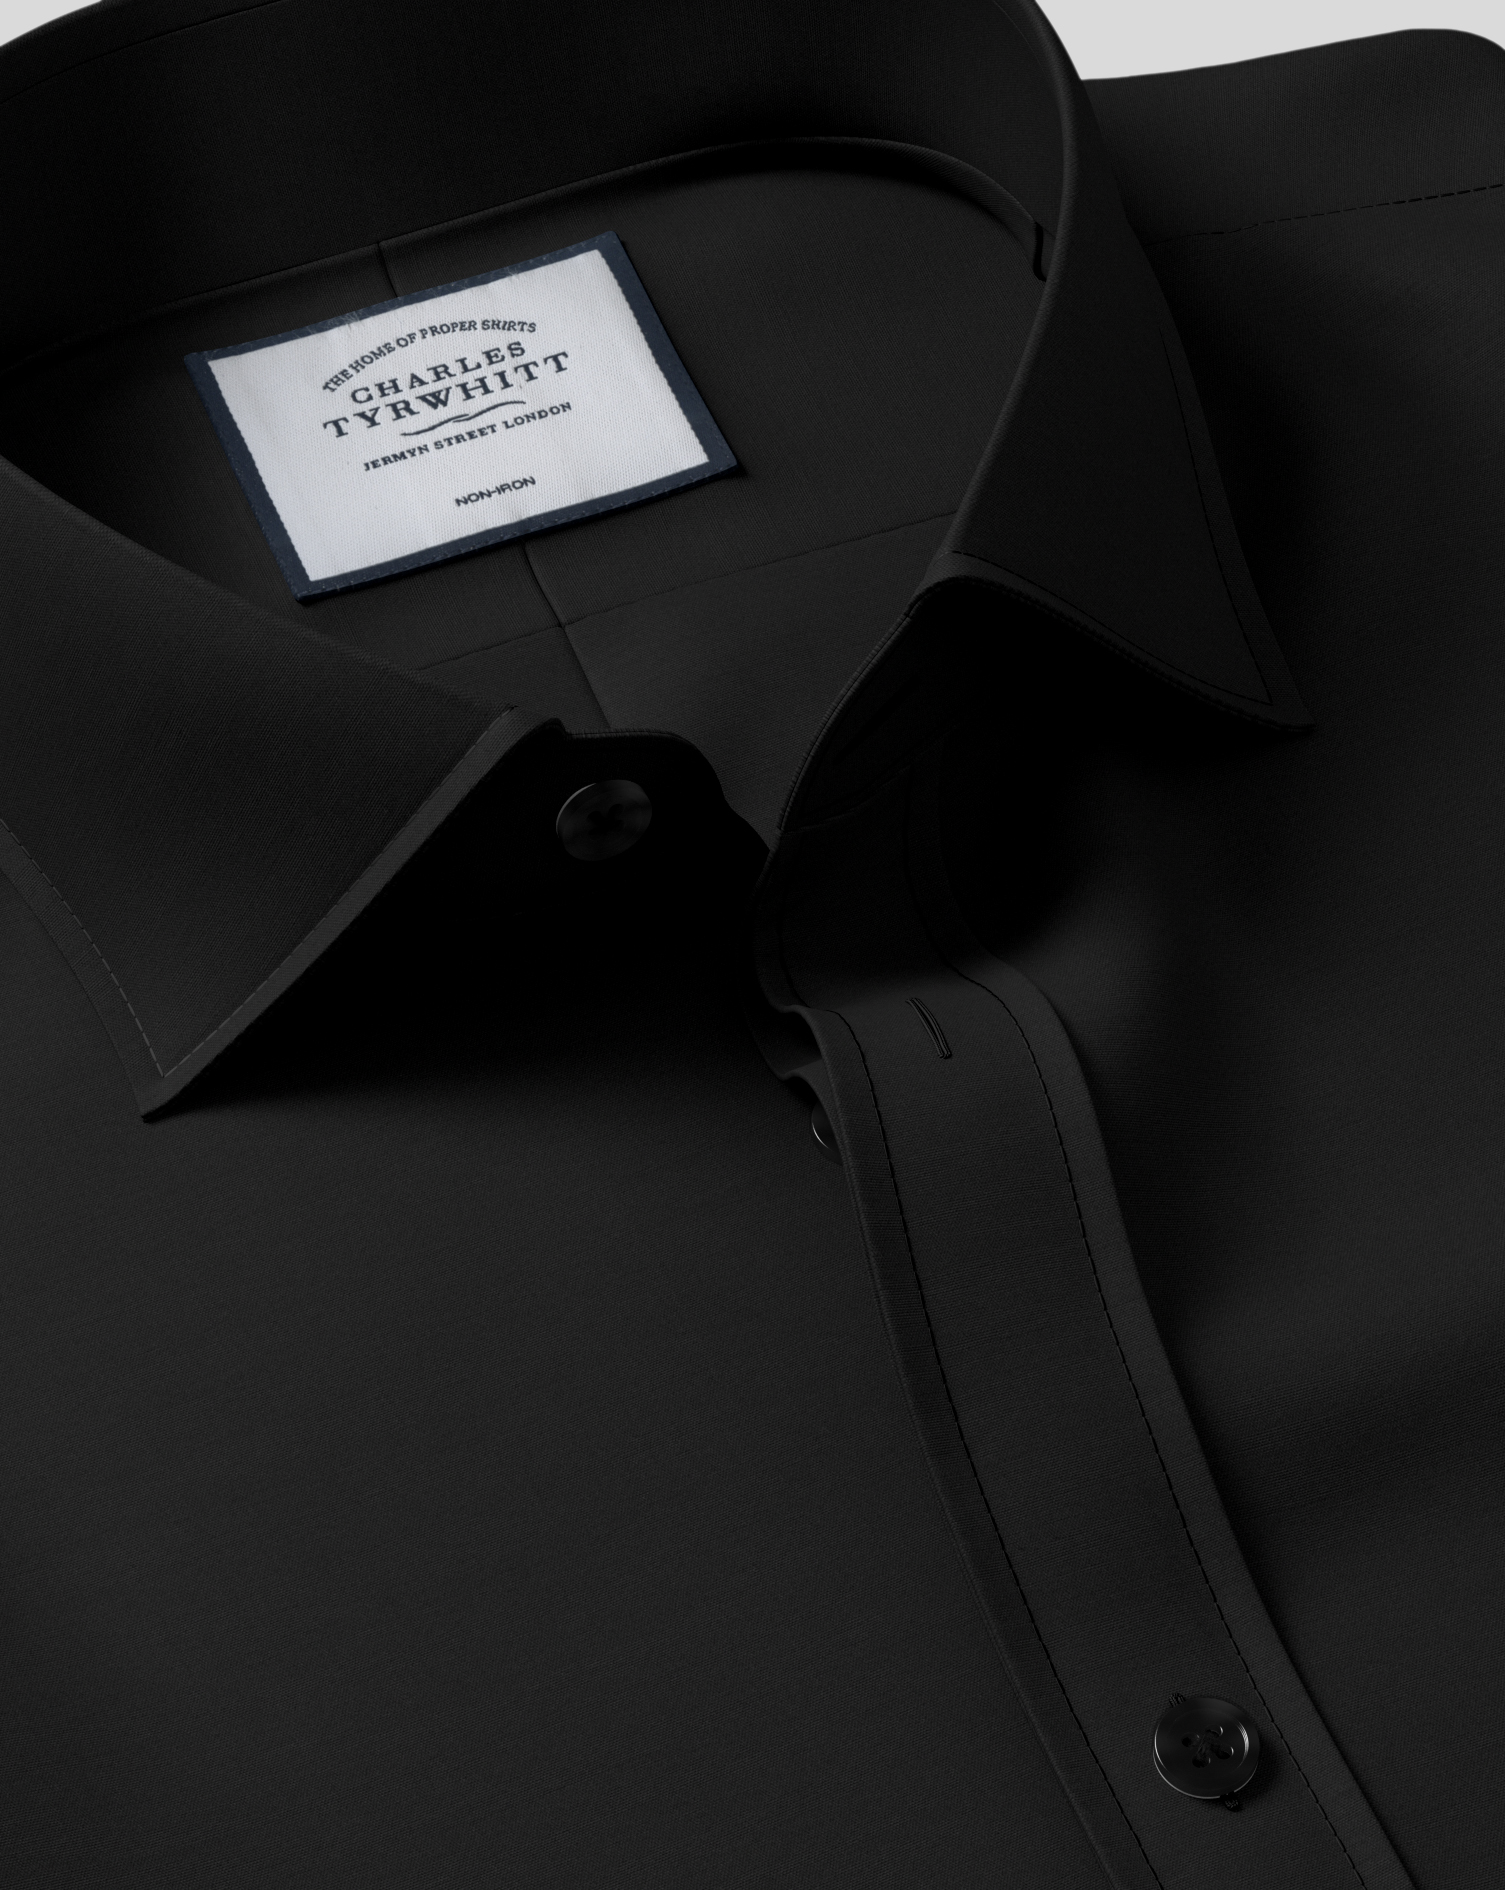 Slim Fit Cutaway Collar Black Non-Iron Poplin Cotton Formal Shirt Single Cuff Size 17/38 by Charles